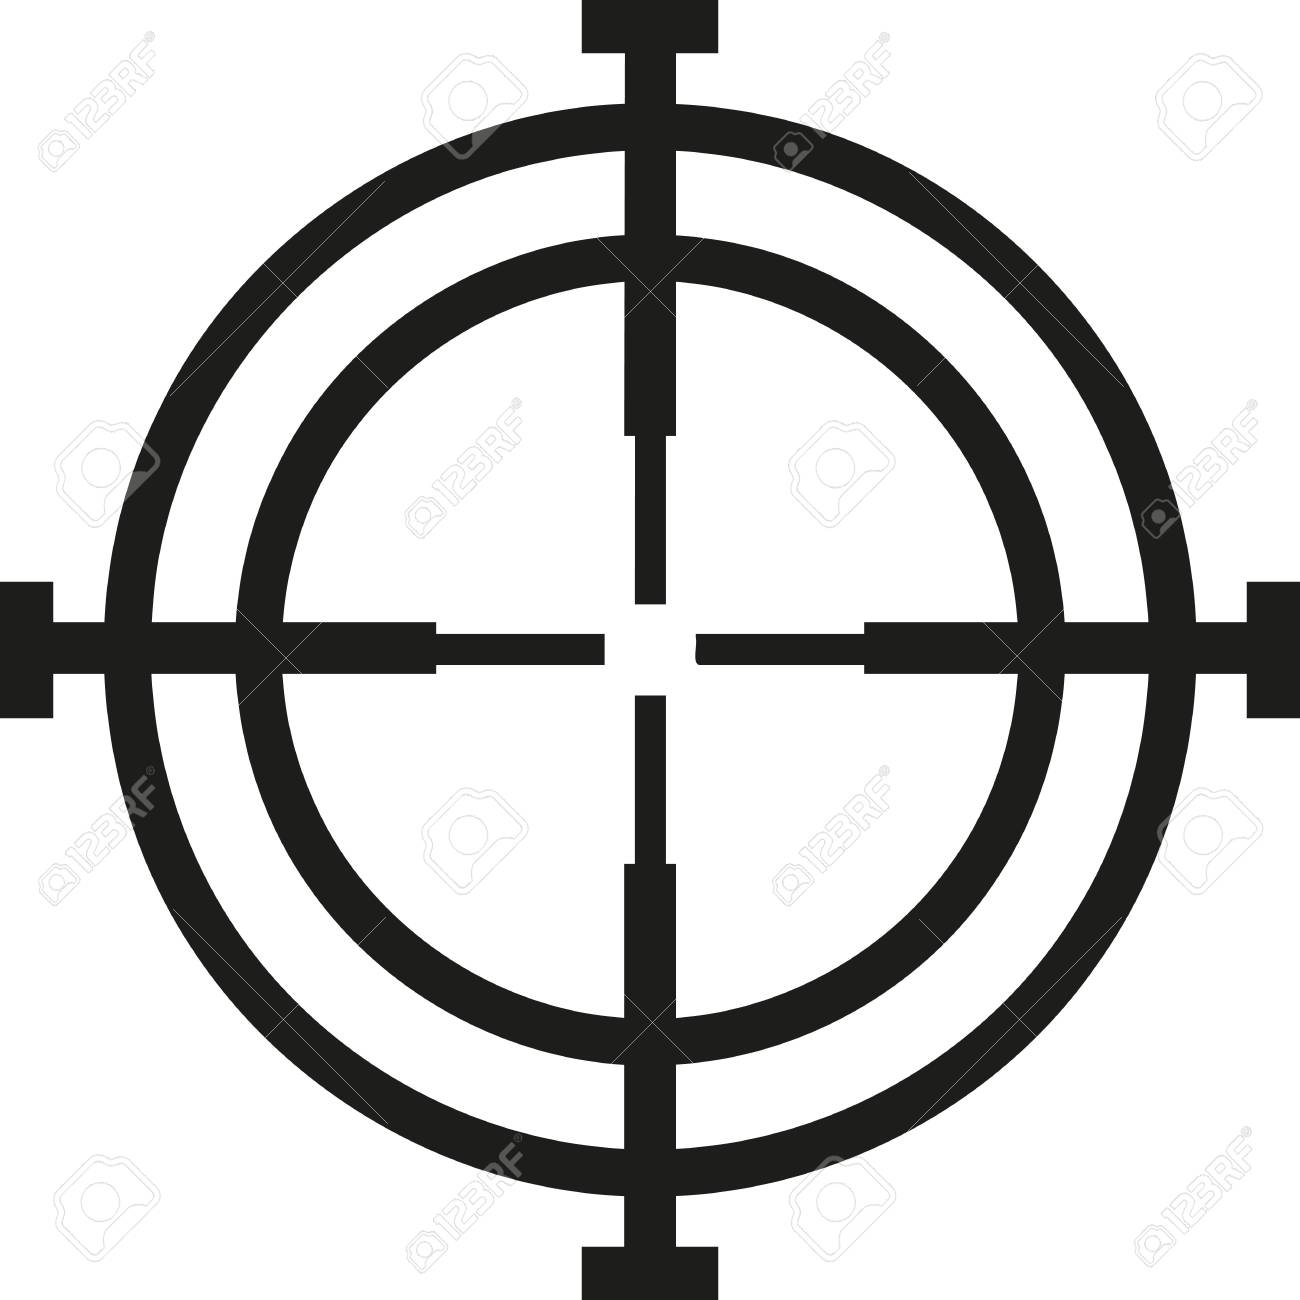 crosshair hunter reticle royalty free cliparts vectors and stock rh 123rf com crosshair vector free crosshair vector free